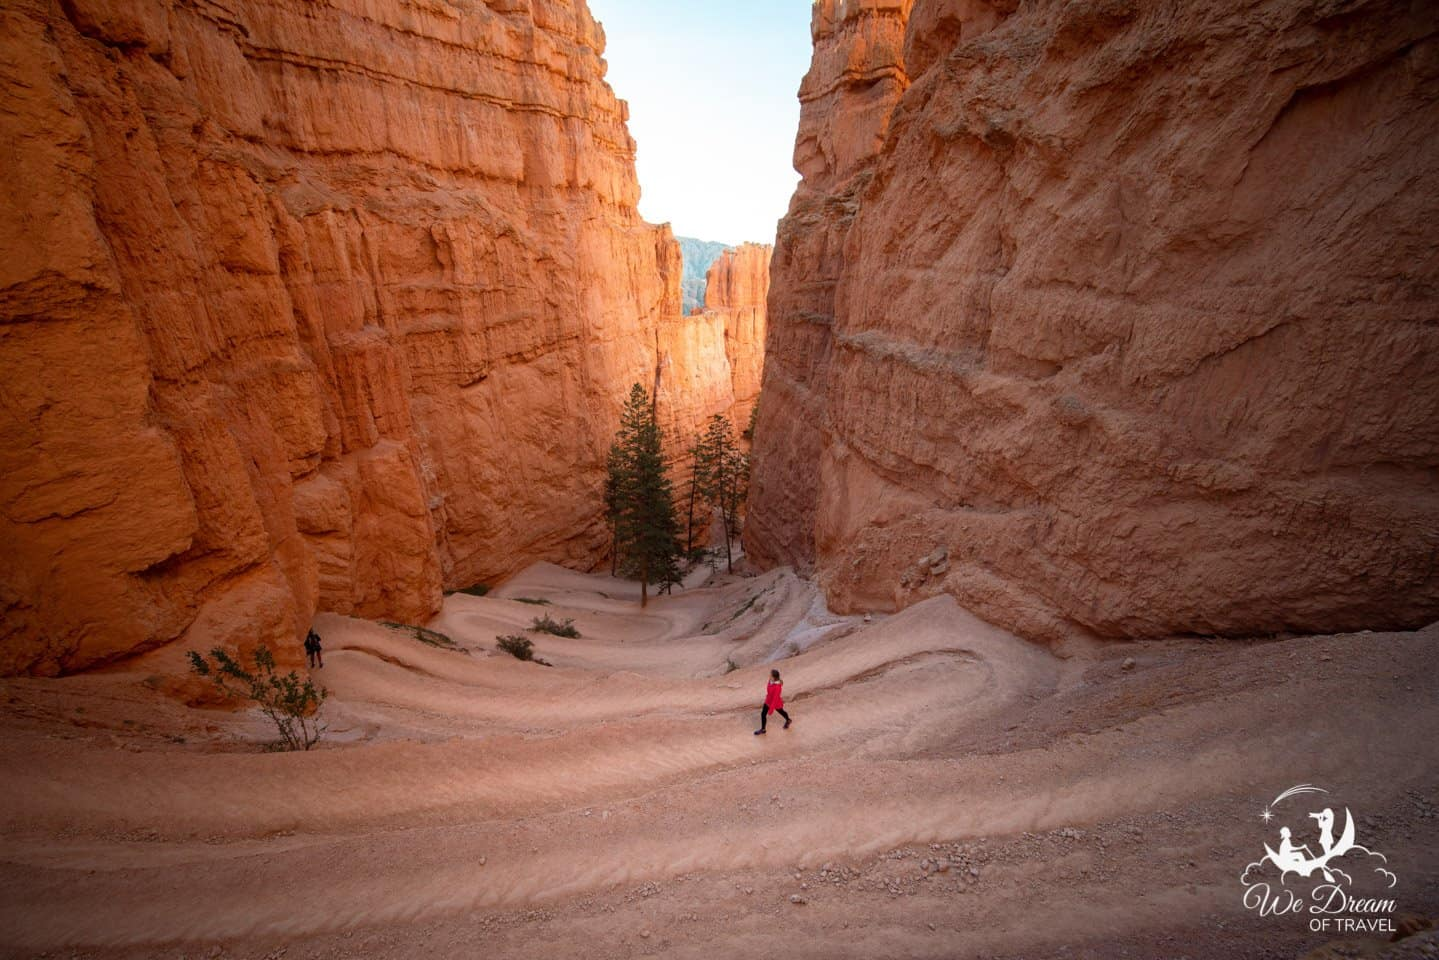 Wandering the twists and turns of the Navajo Loop in Bryce Canyon National Park.